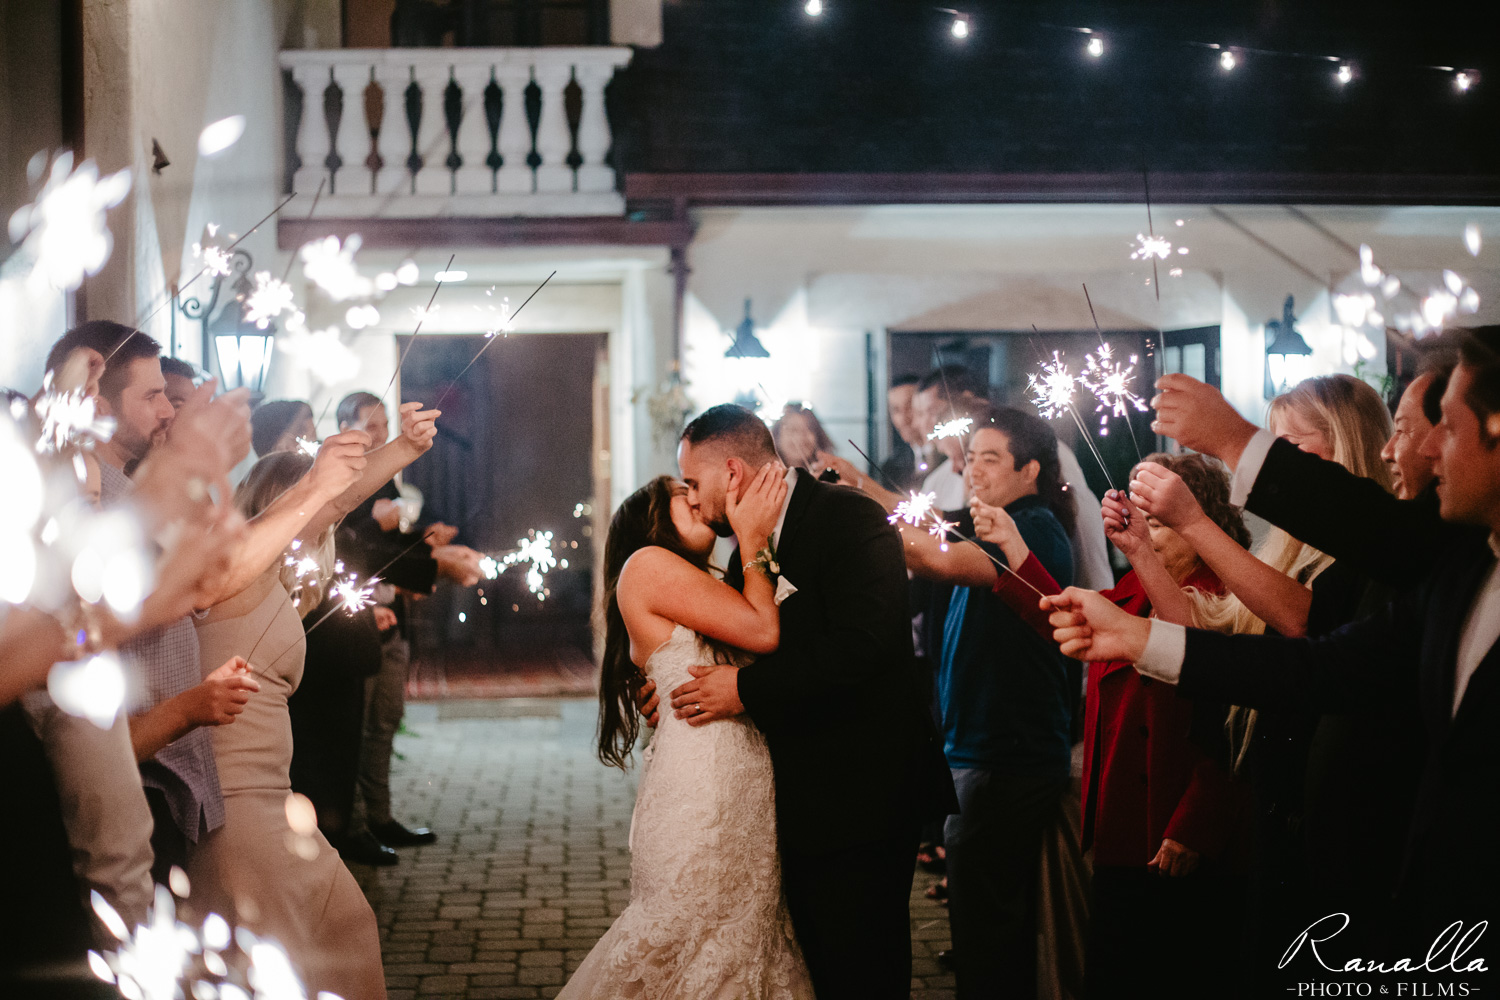 Sparkler Exit Photos-Carmel Wedding Photos-Ranalla Photo & Films-5.jpg